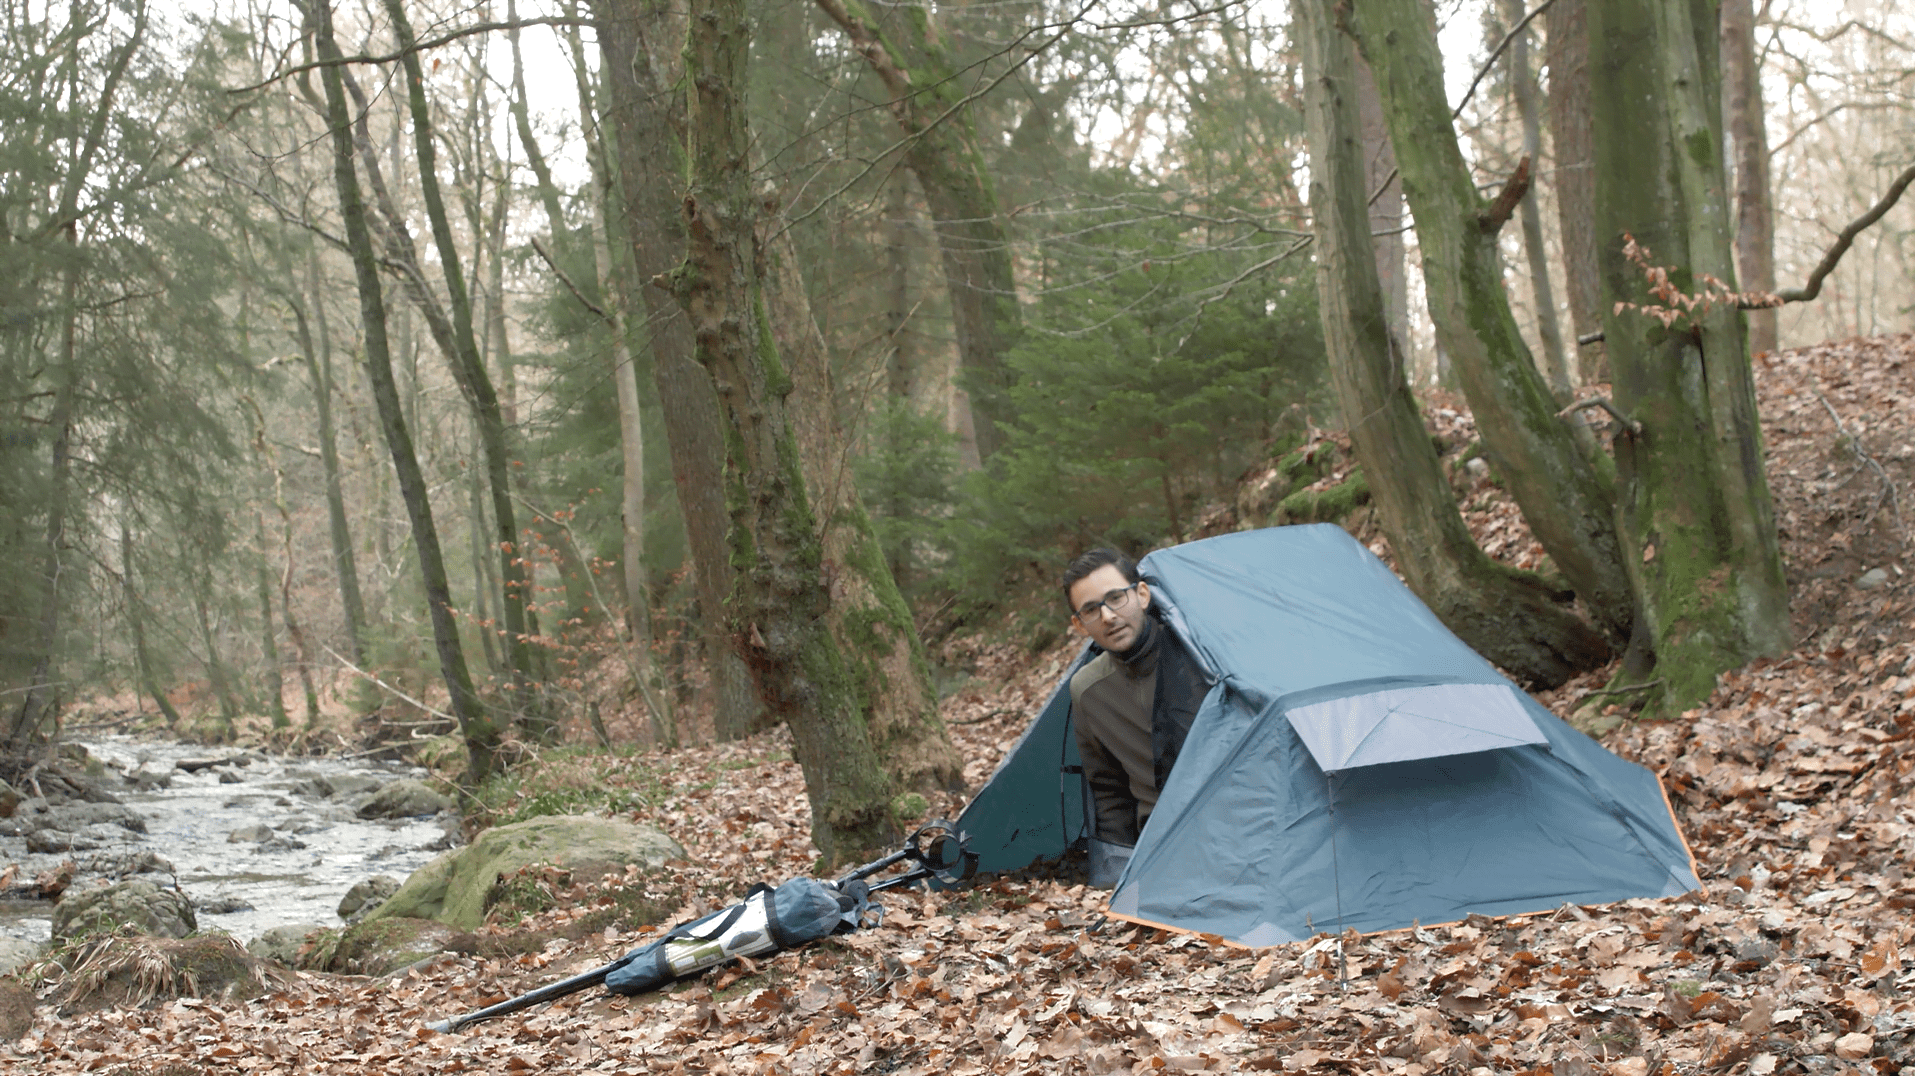 Review: Highlander Blackthorn 1 XL tent